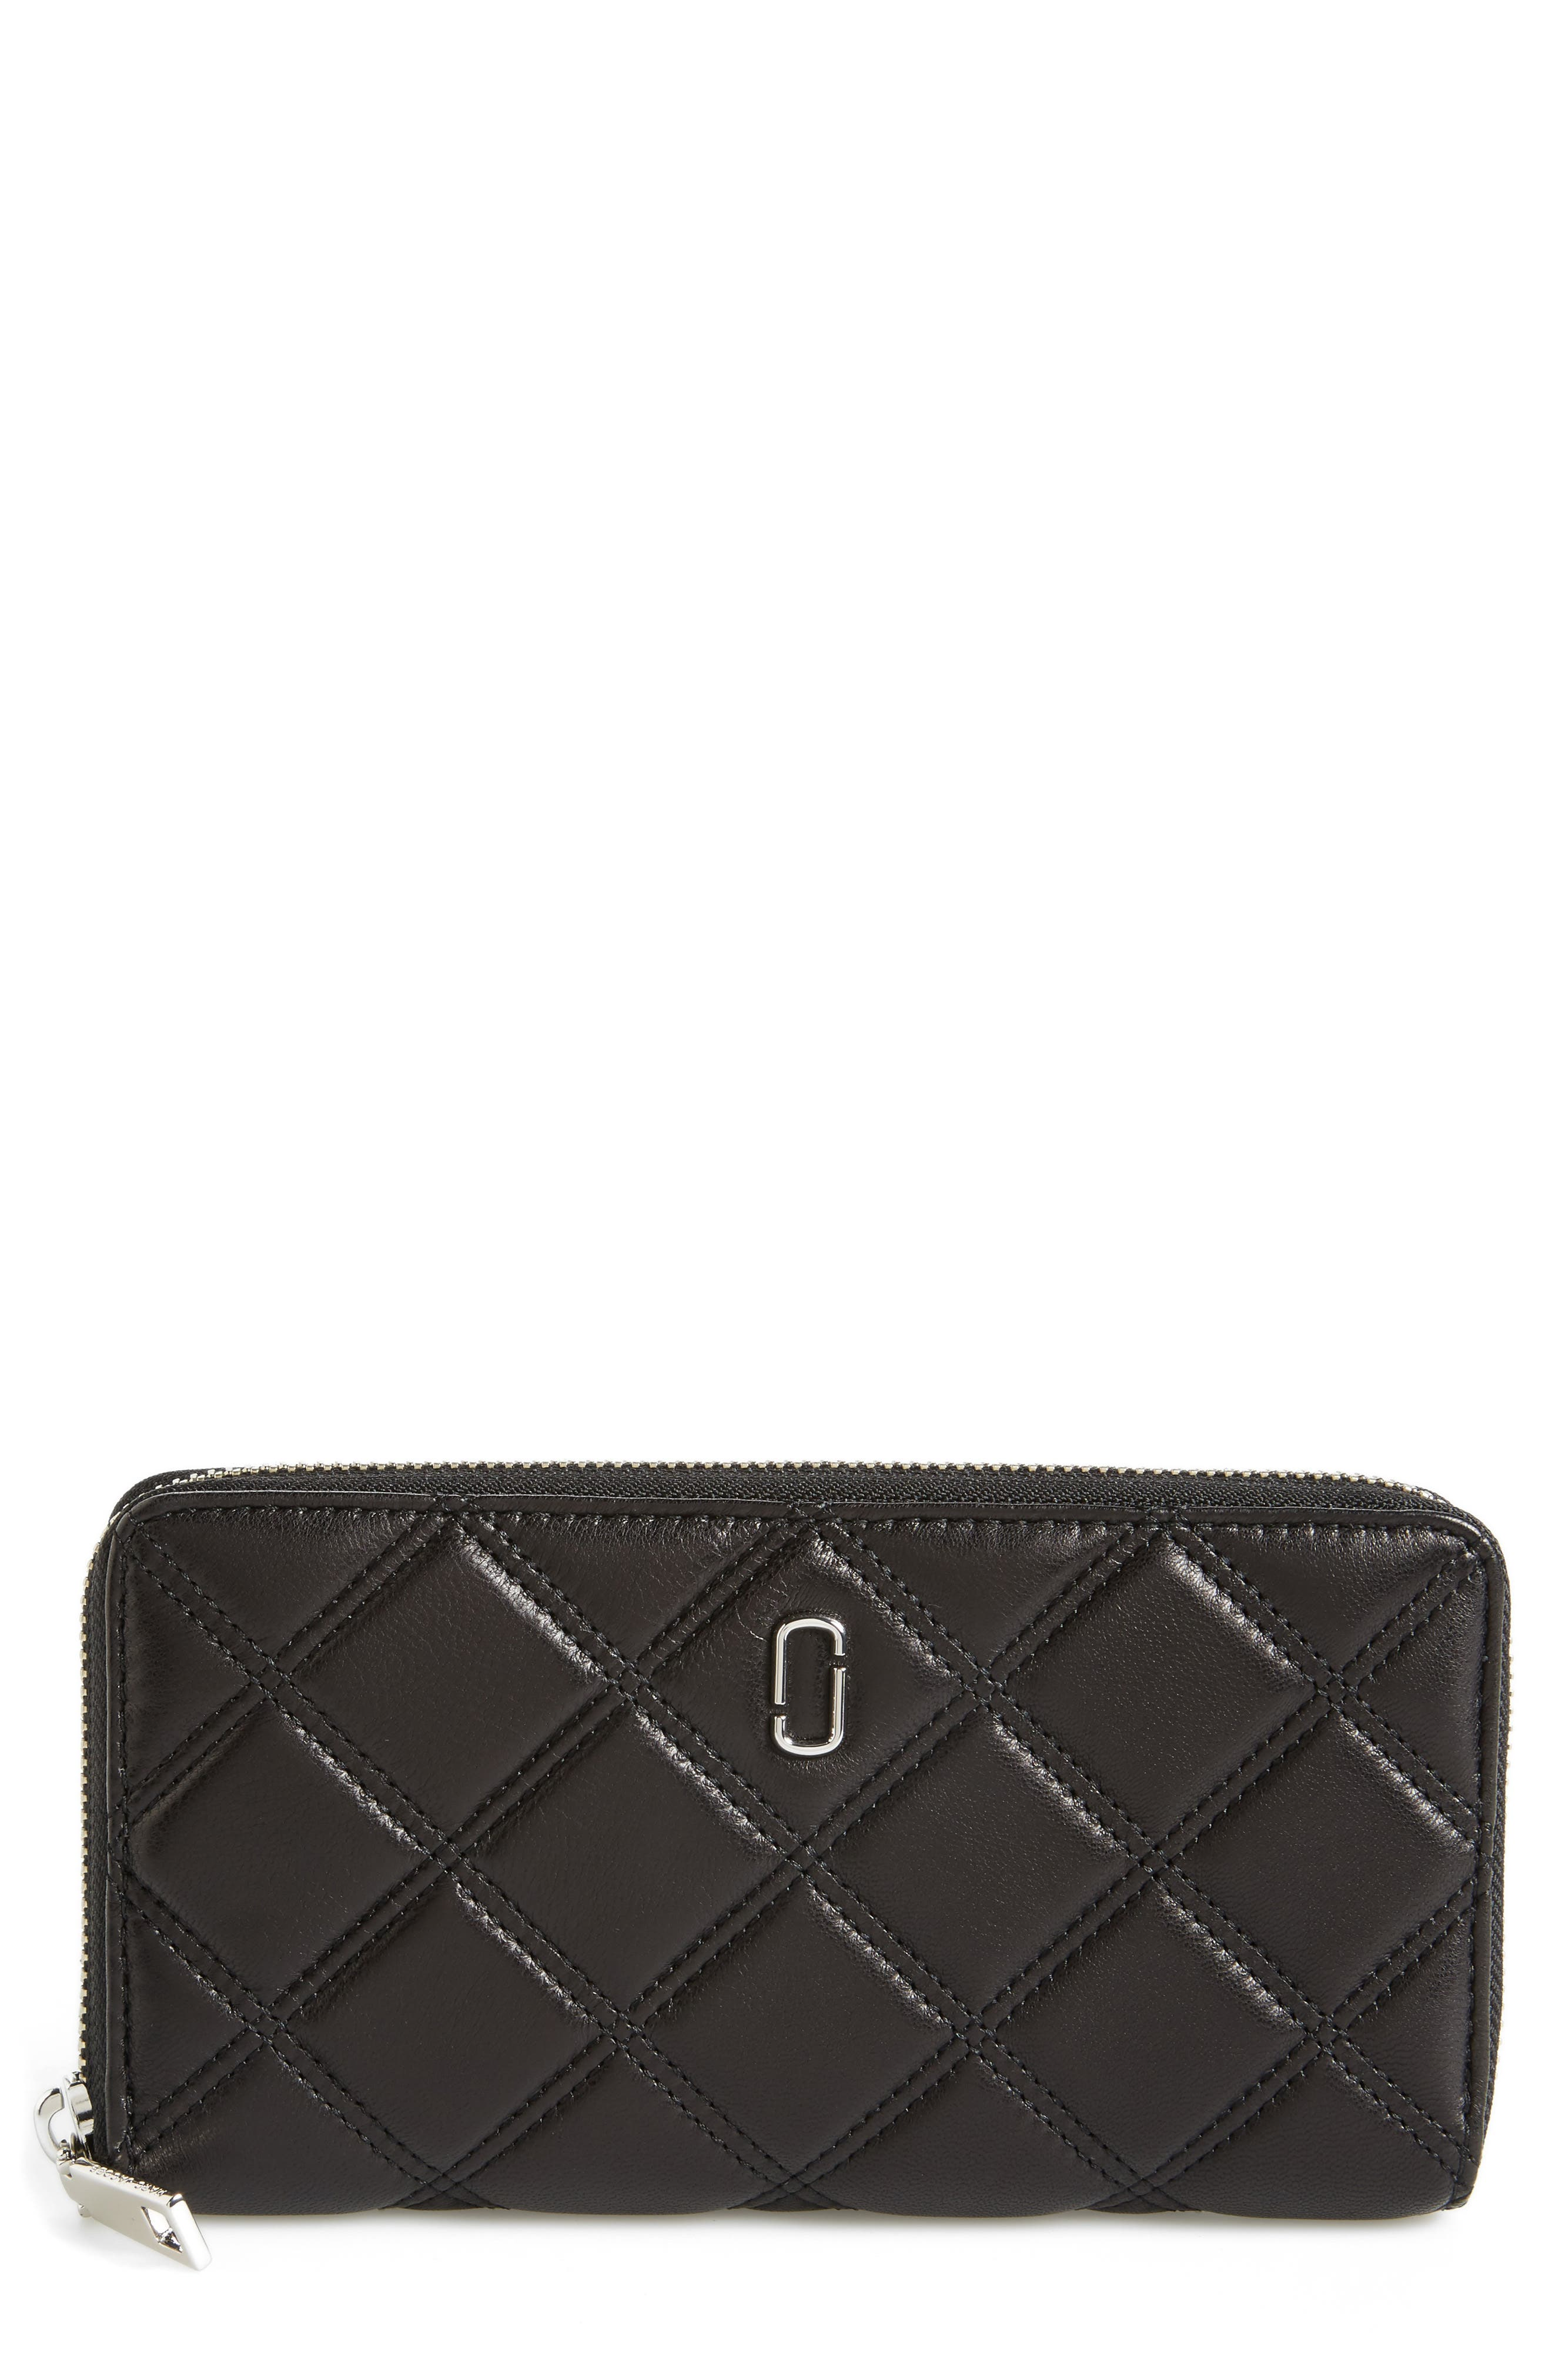 Main Image - MARC JACOBS Quilted Leather Zip Wallet